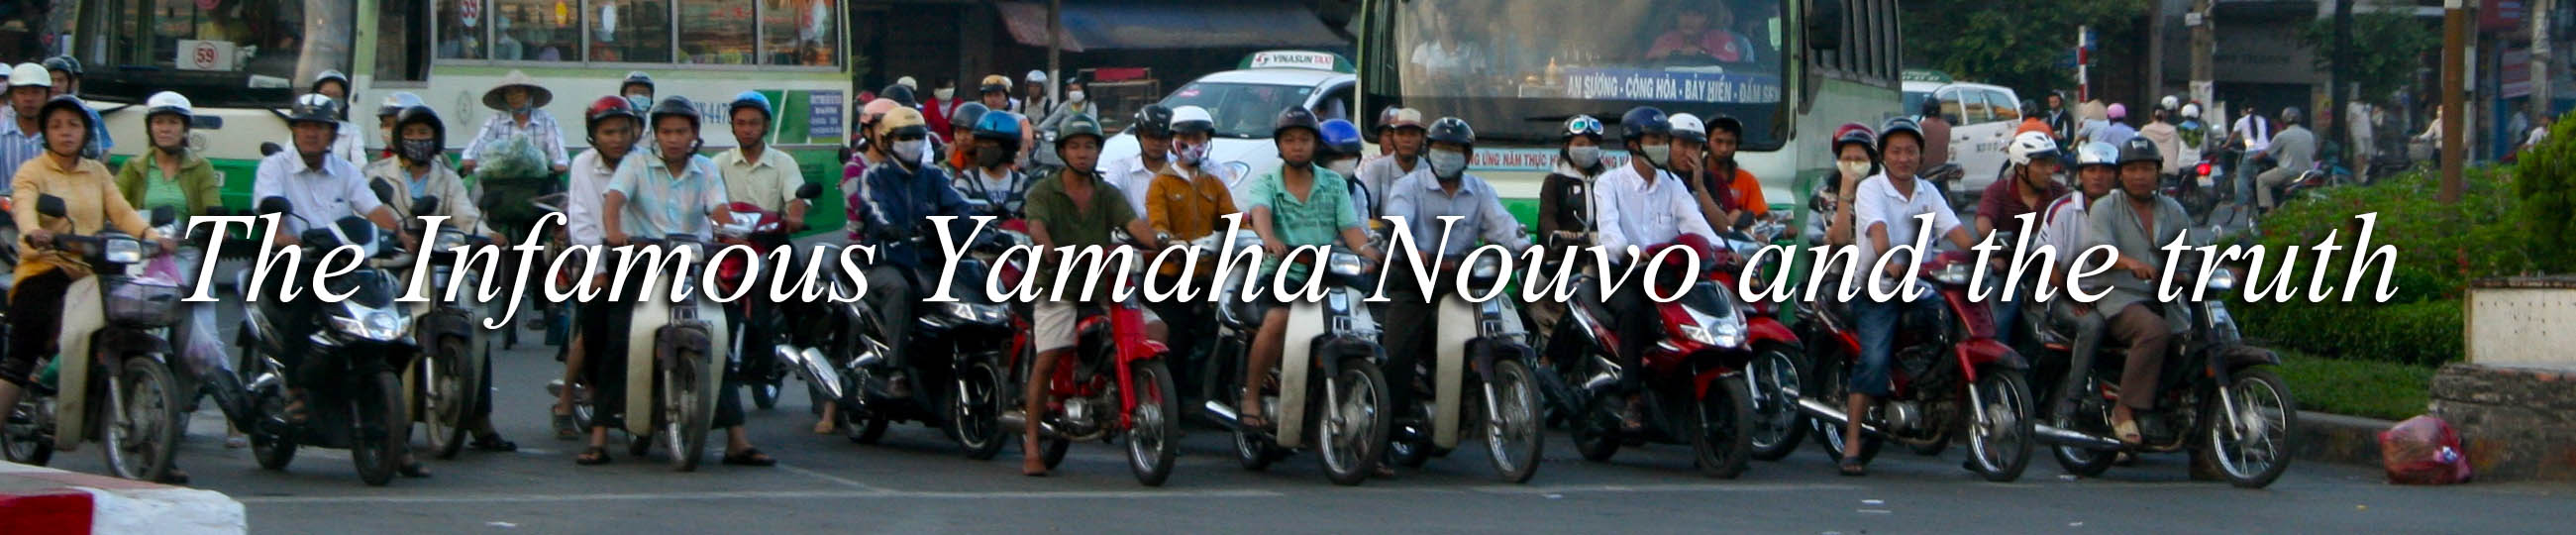 City rentals and bashing the Yamaha Nouvo